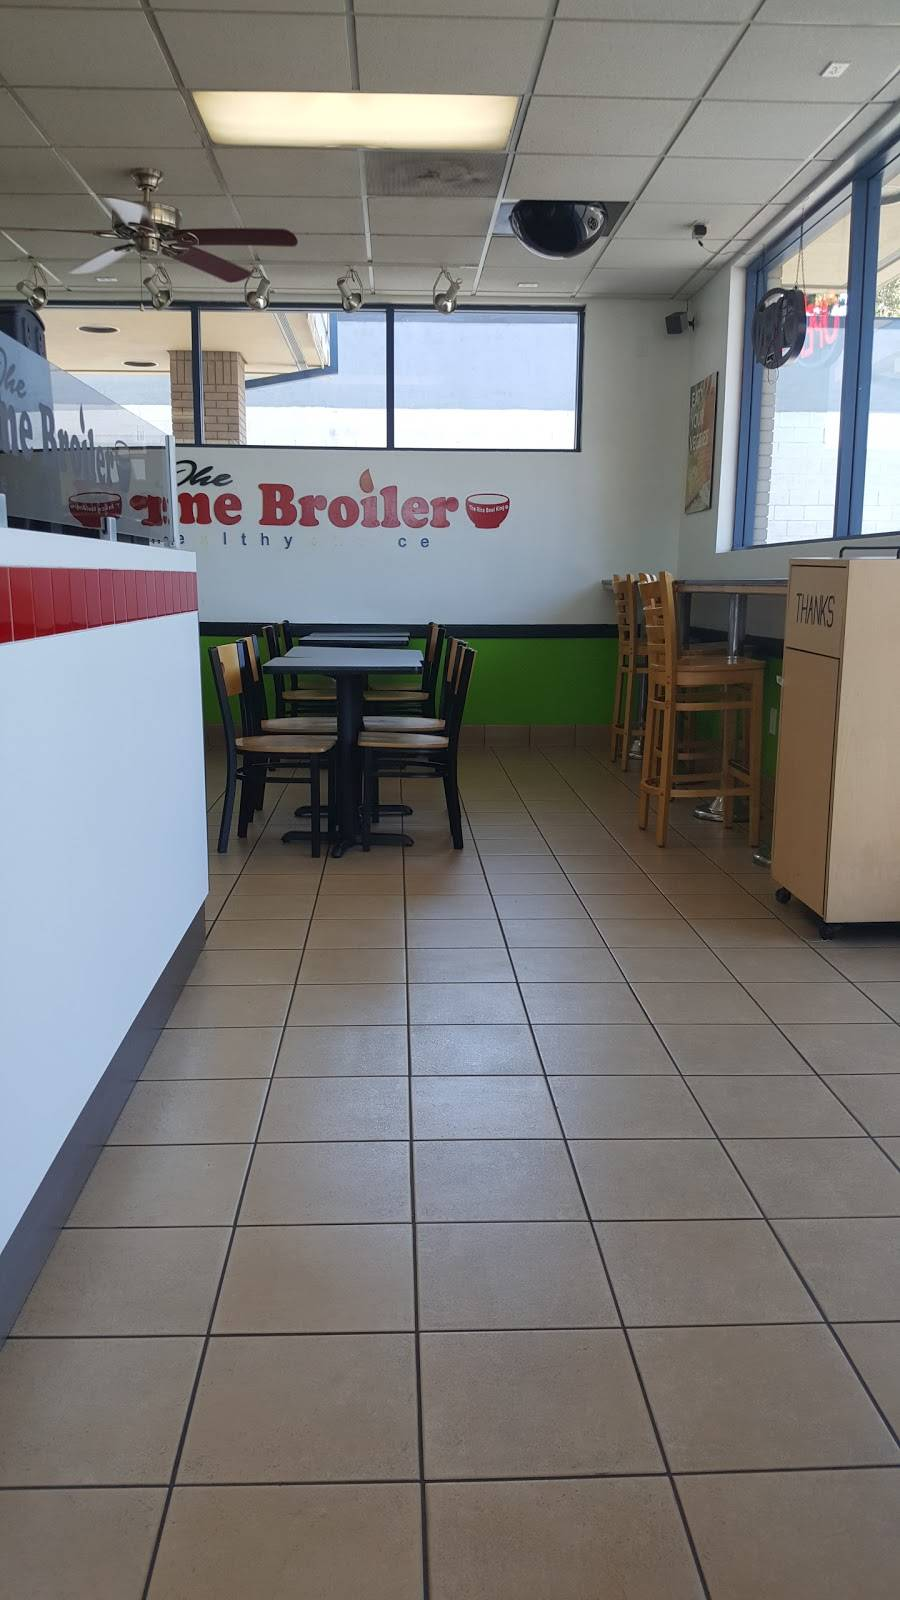 Flame Broiler   restaurant   1000 W Commonwealth Ave, Fullerton, CA 92833, USA   7148701589 OR +1 714-870-1589